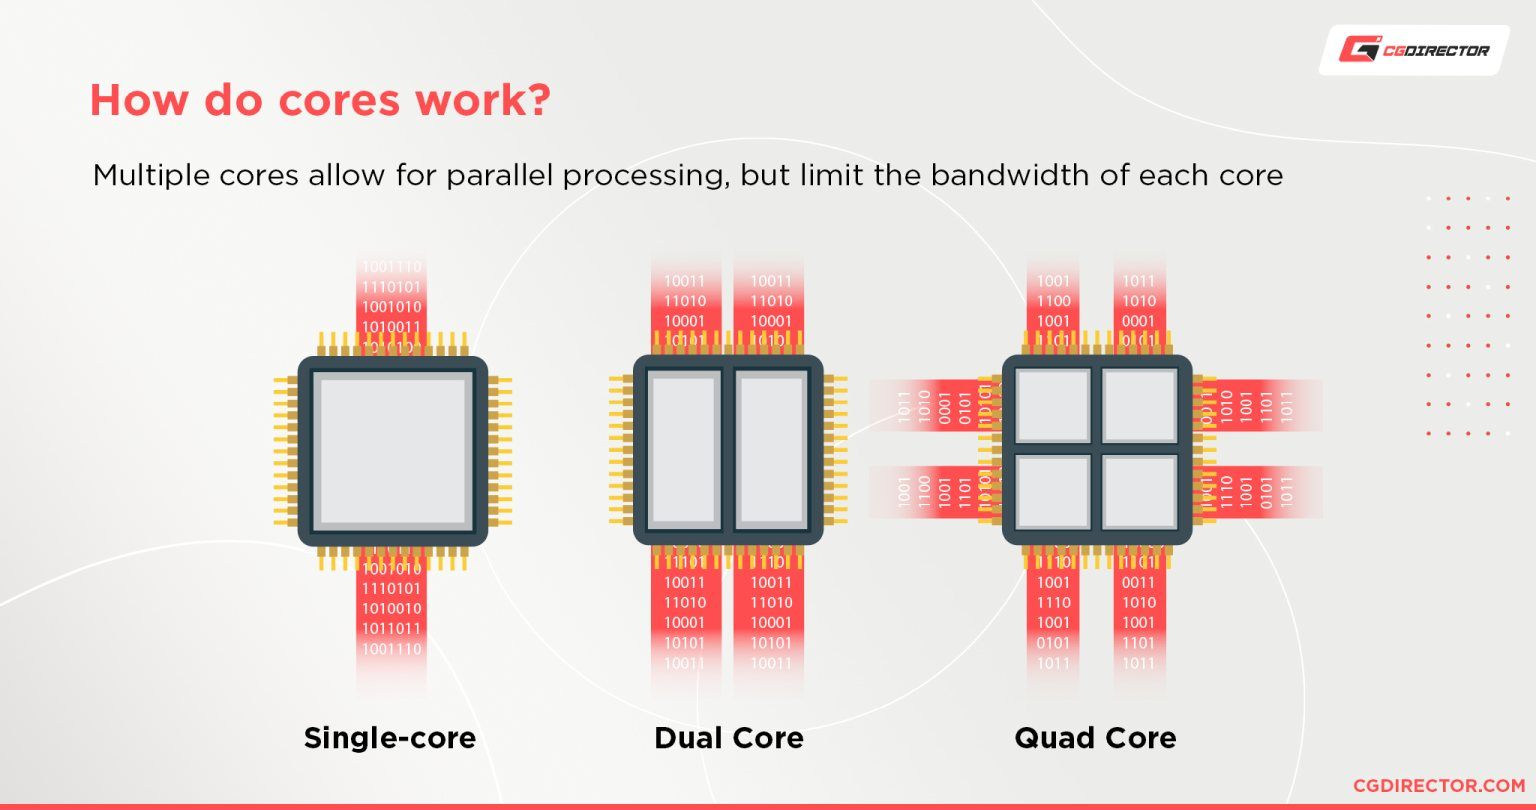 How do cores work - Bandwidth limiting with added cores